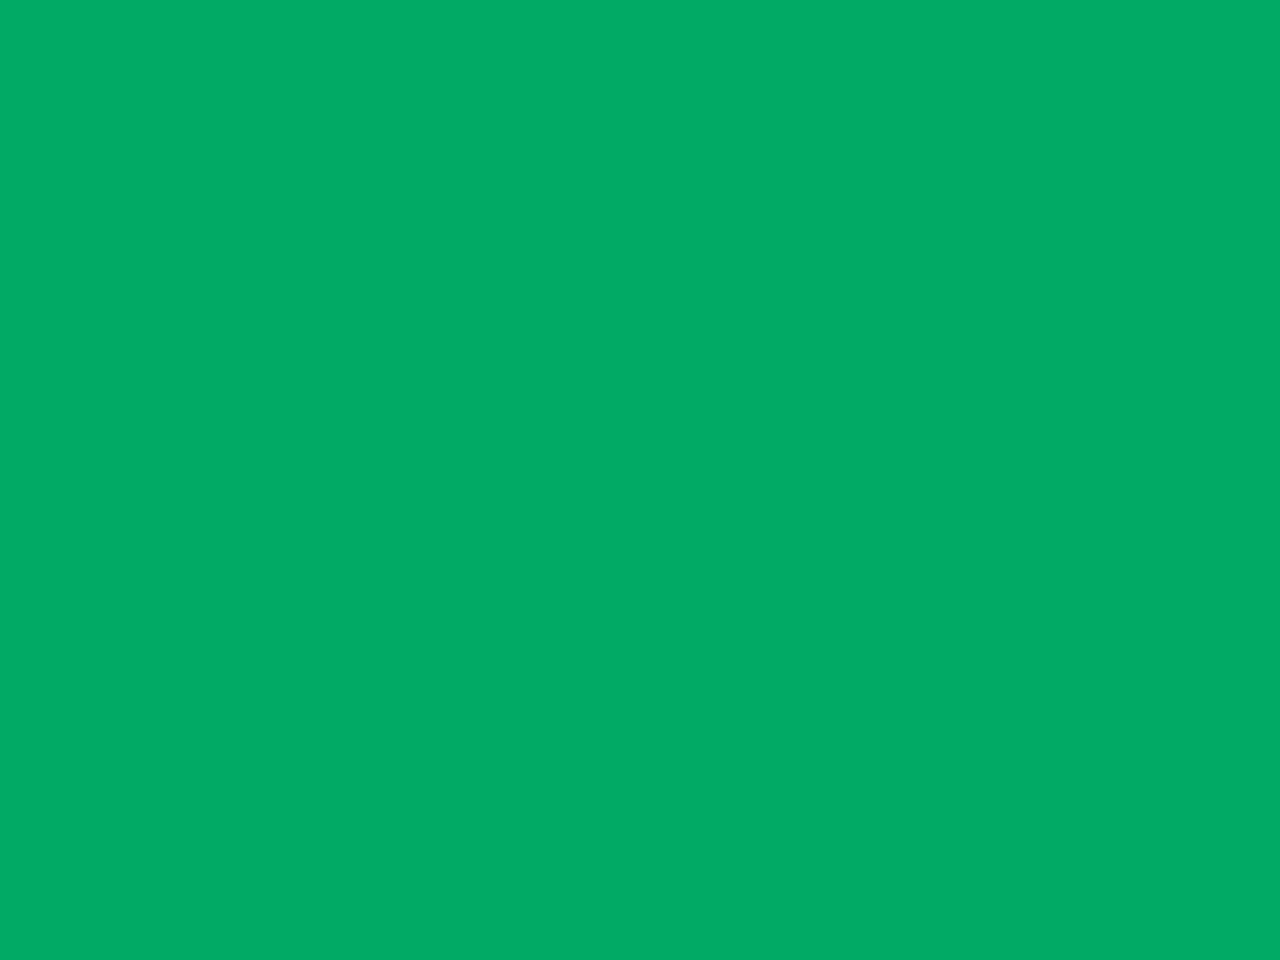 1280x960 GO Green Solid Color Background